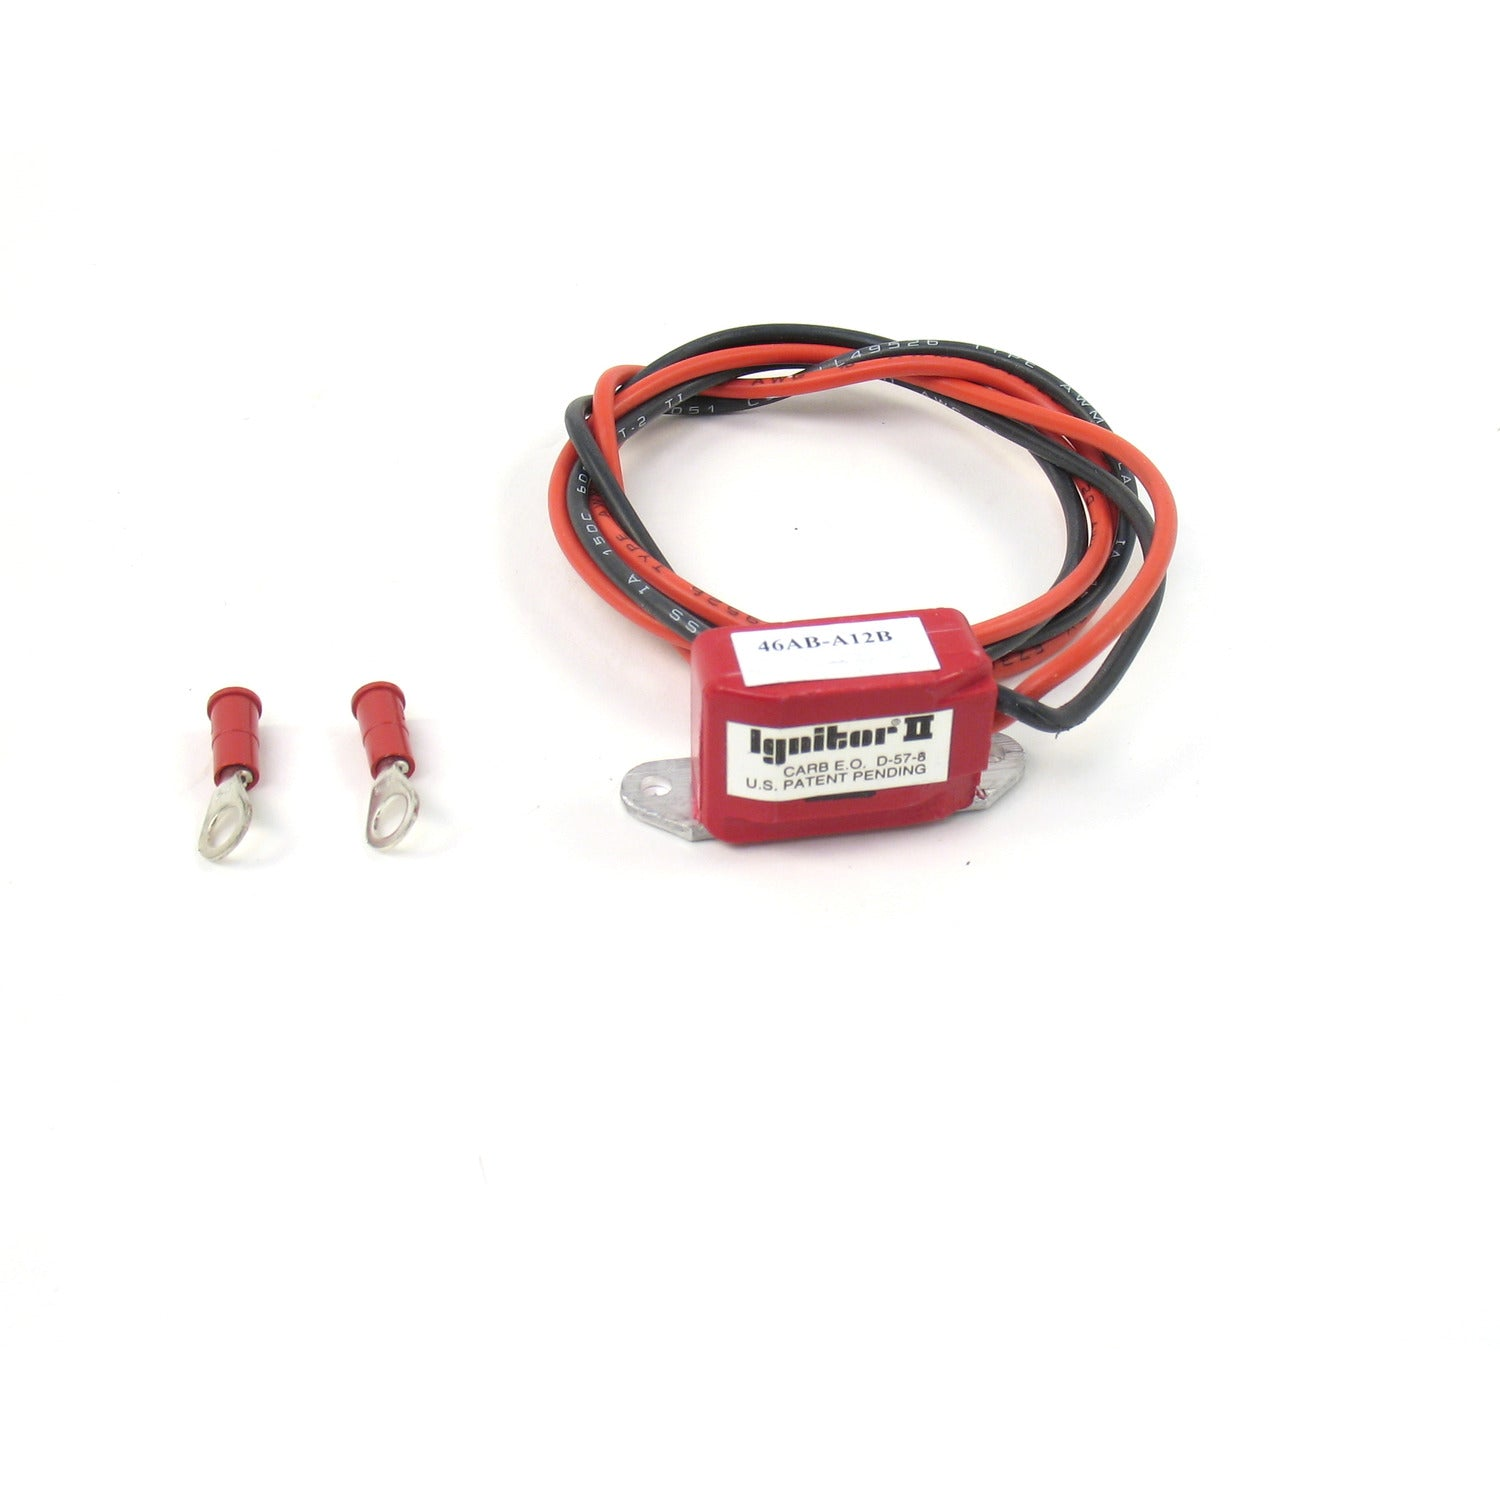 PerTronix D500703 Module (replacement) Ignitor II for PerTronix Flame-Thrower VW Cast Non-Vacuum Distributor